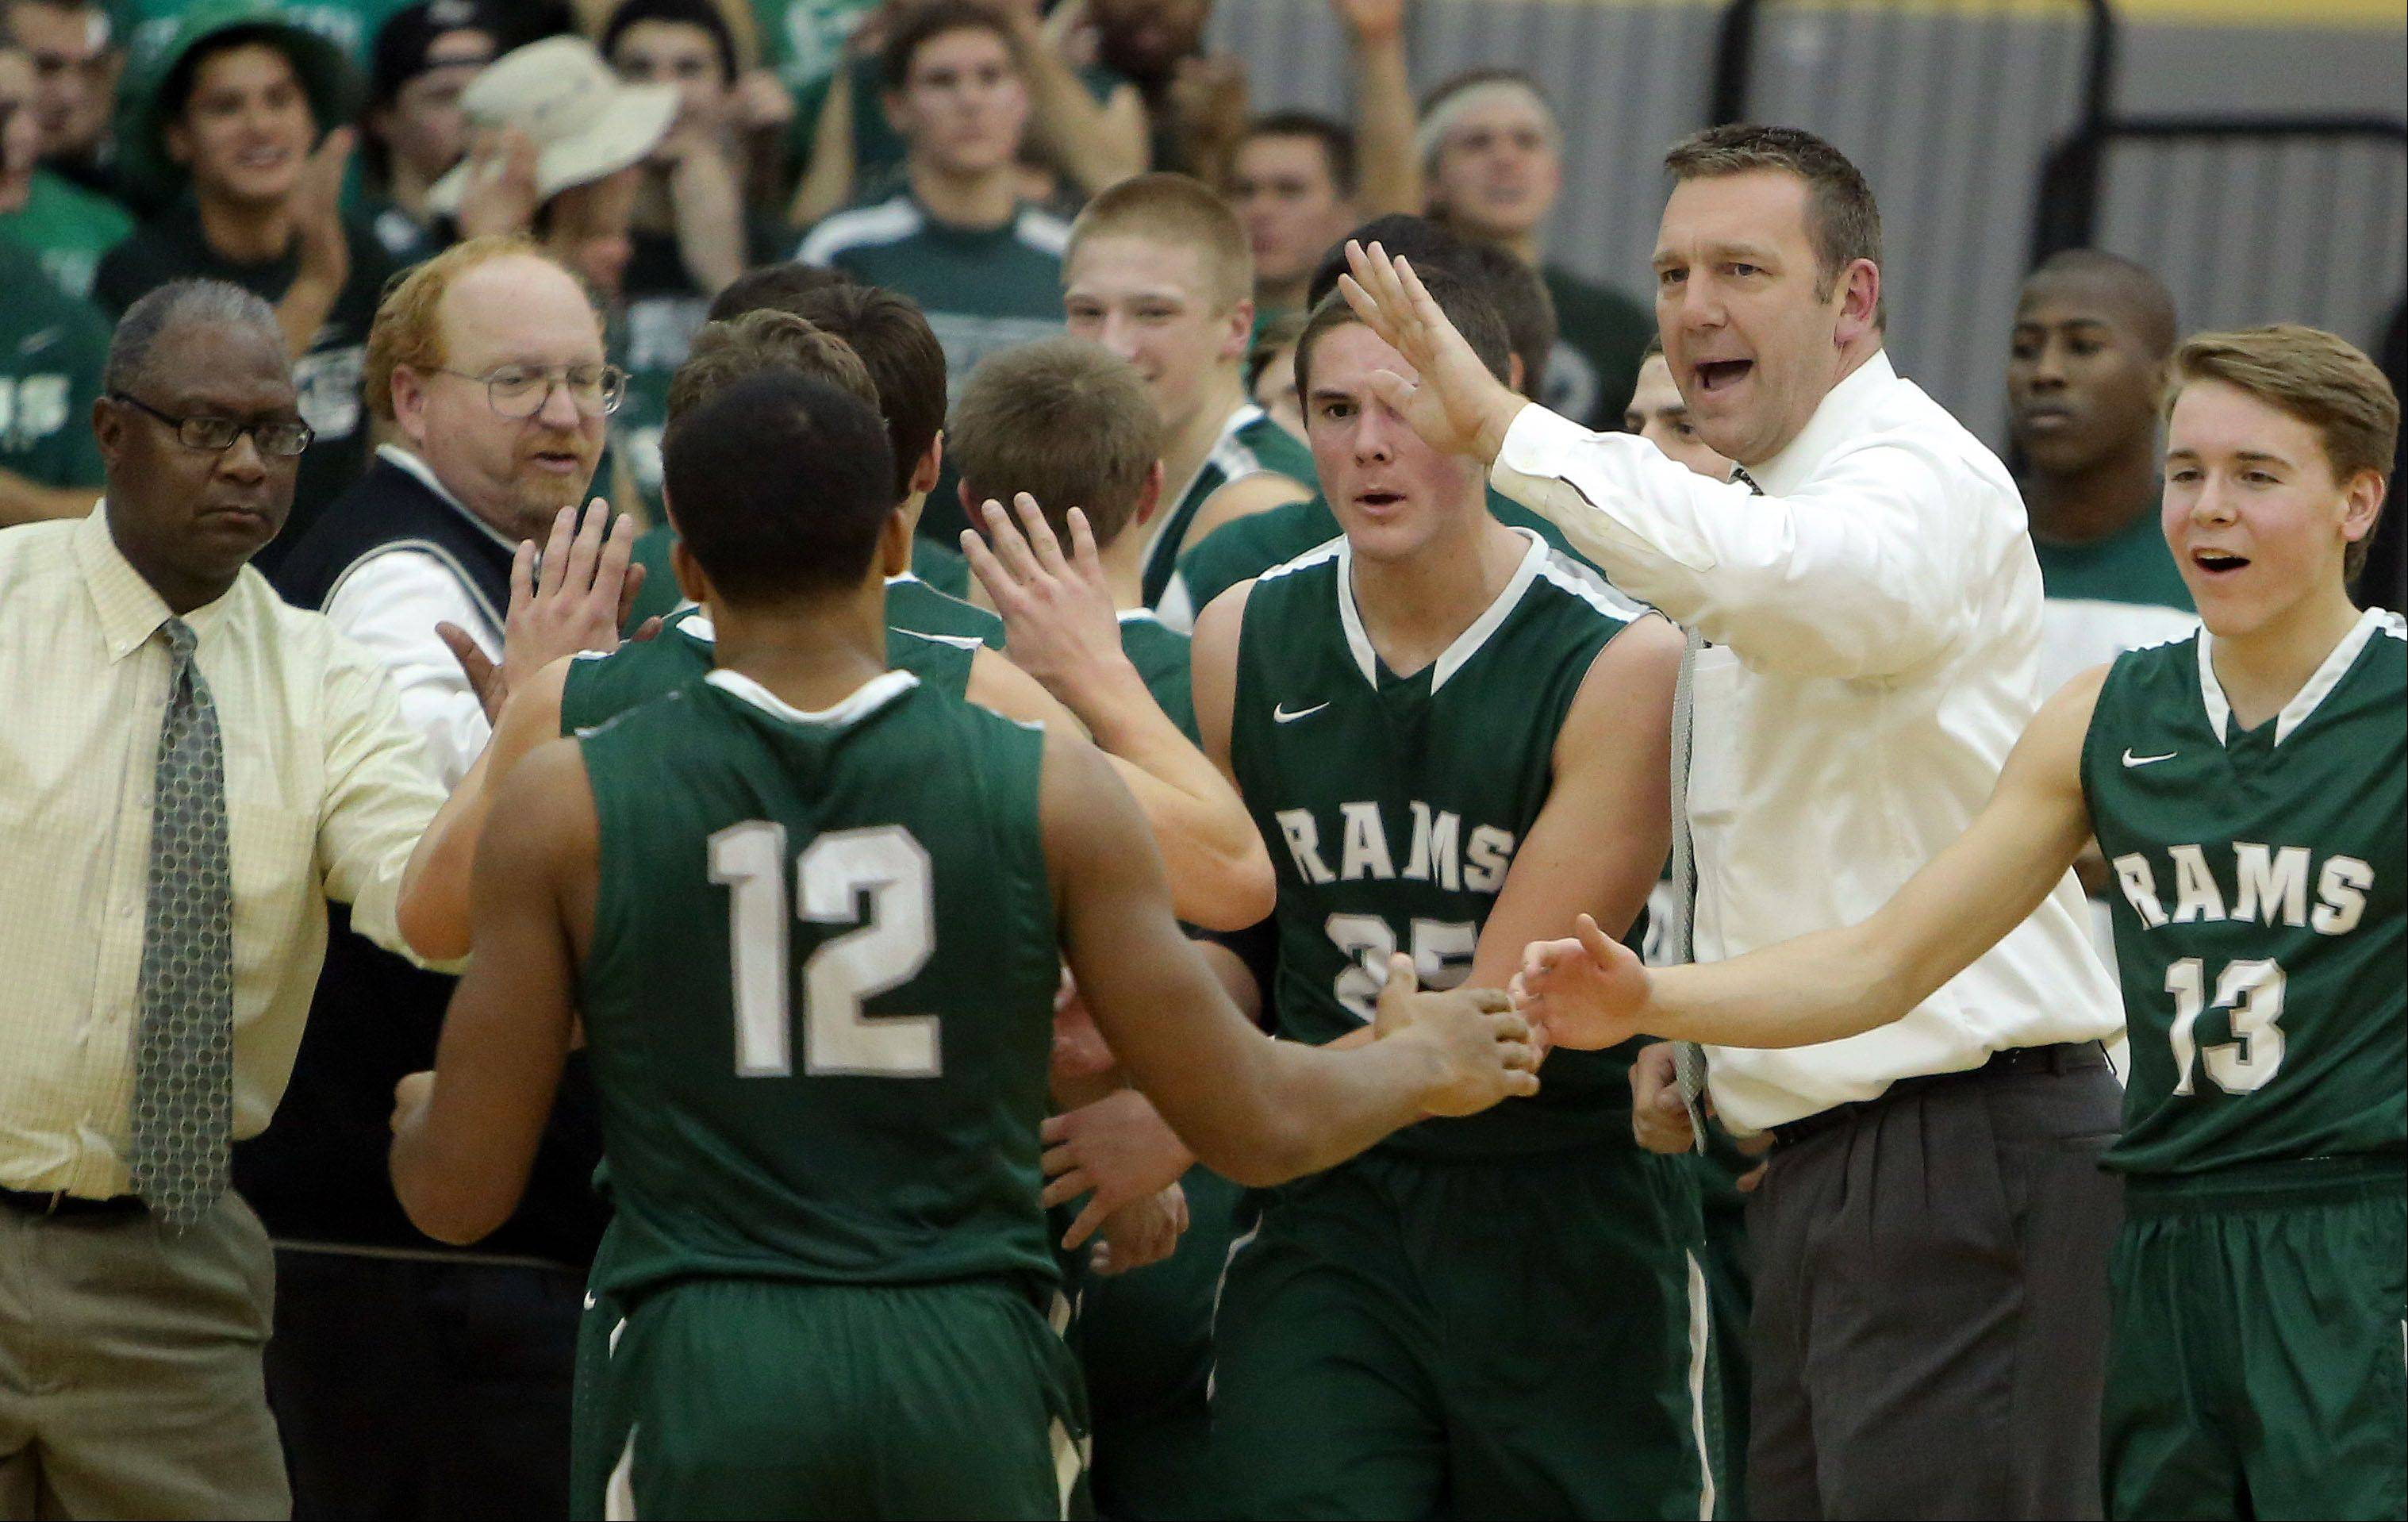 Grayslake Central's head coach Brian Moe, right, encourages his team.